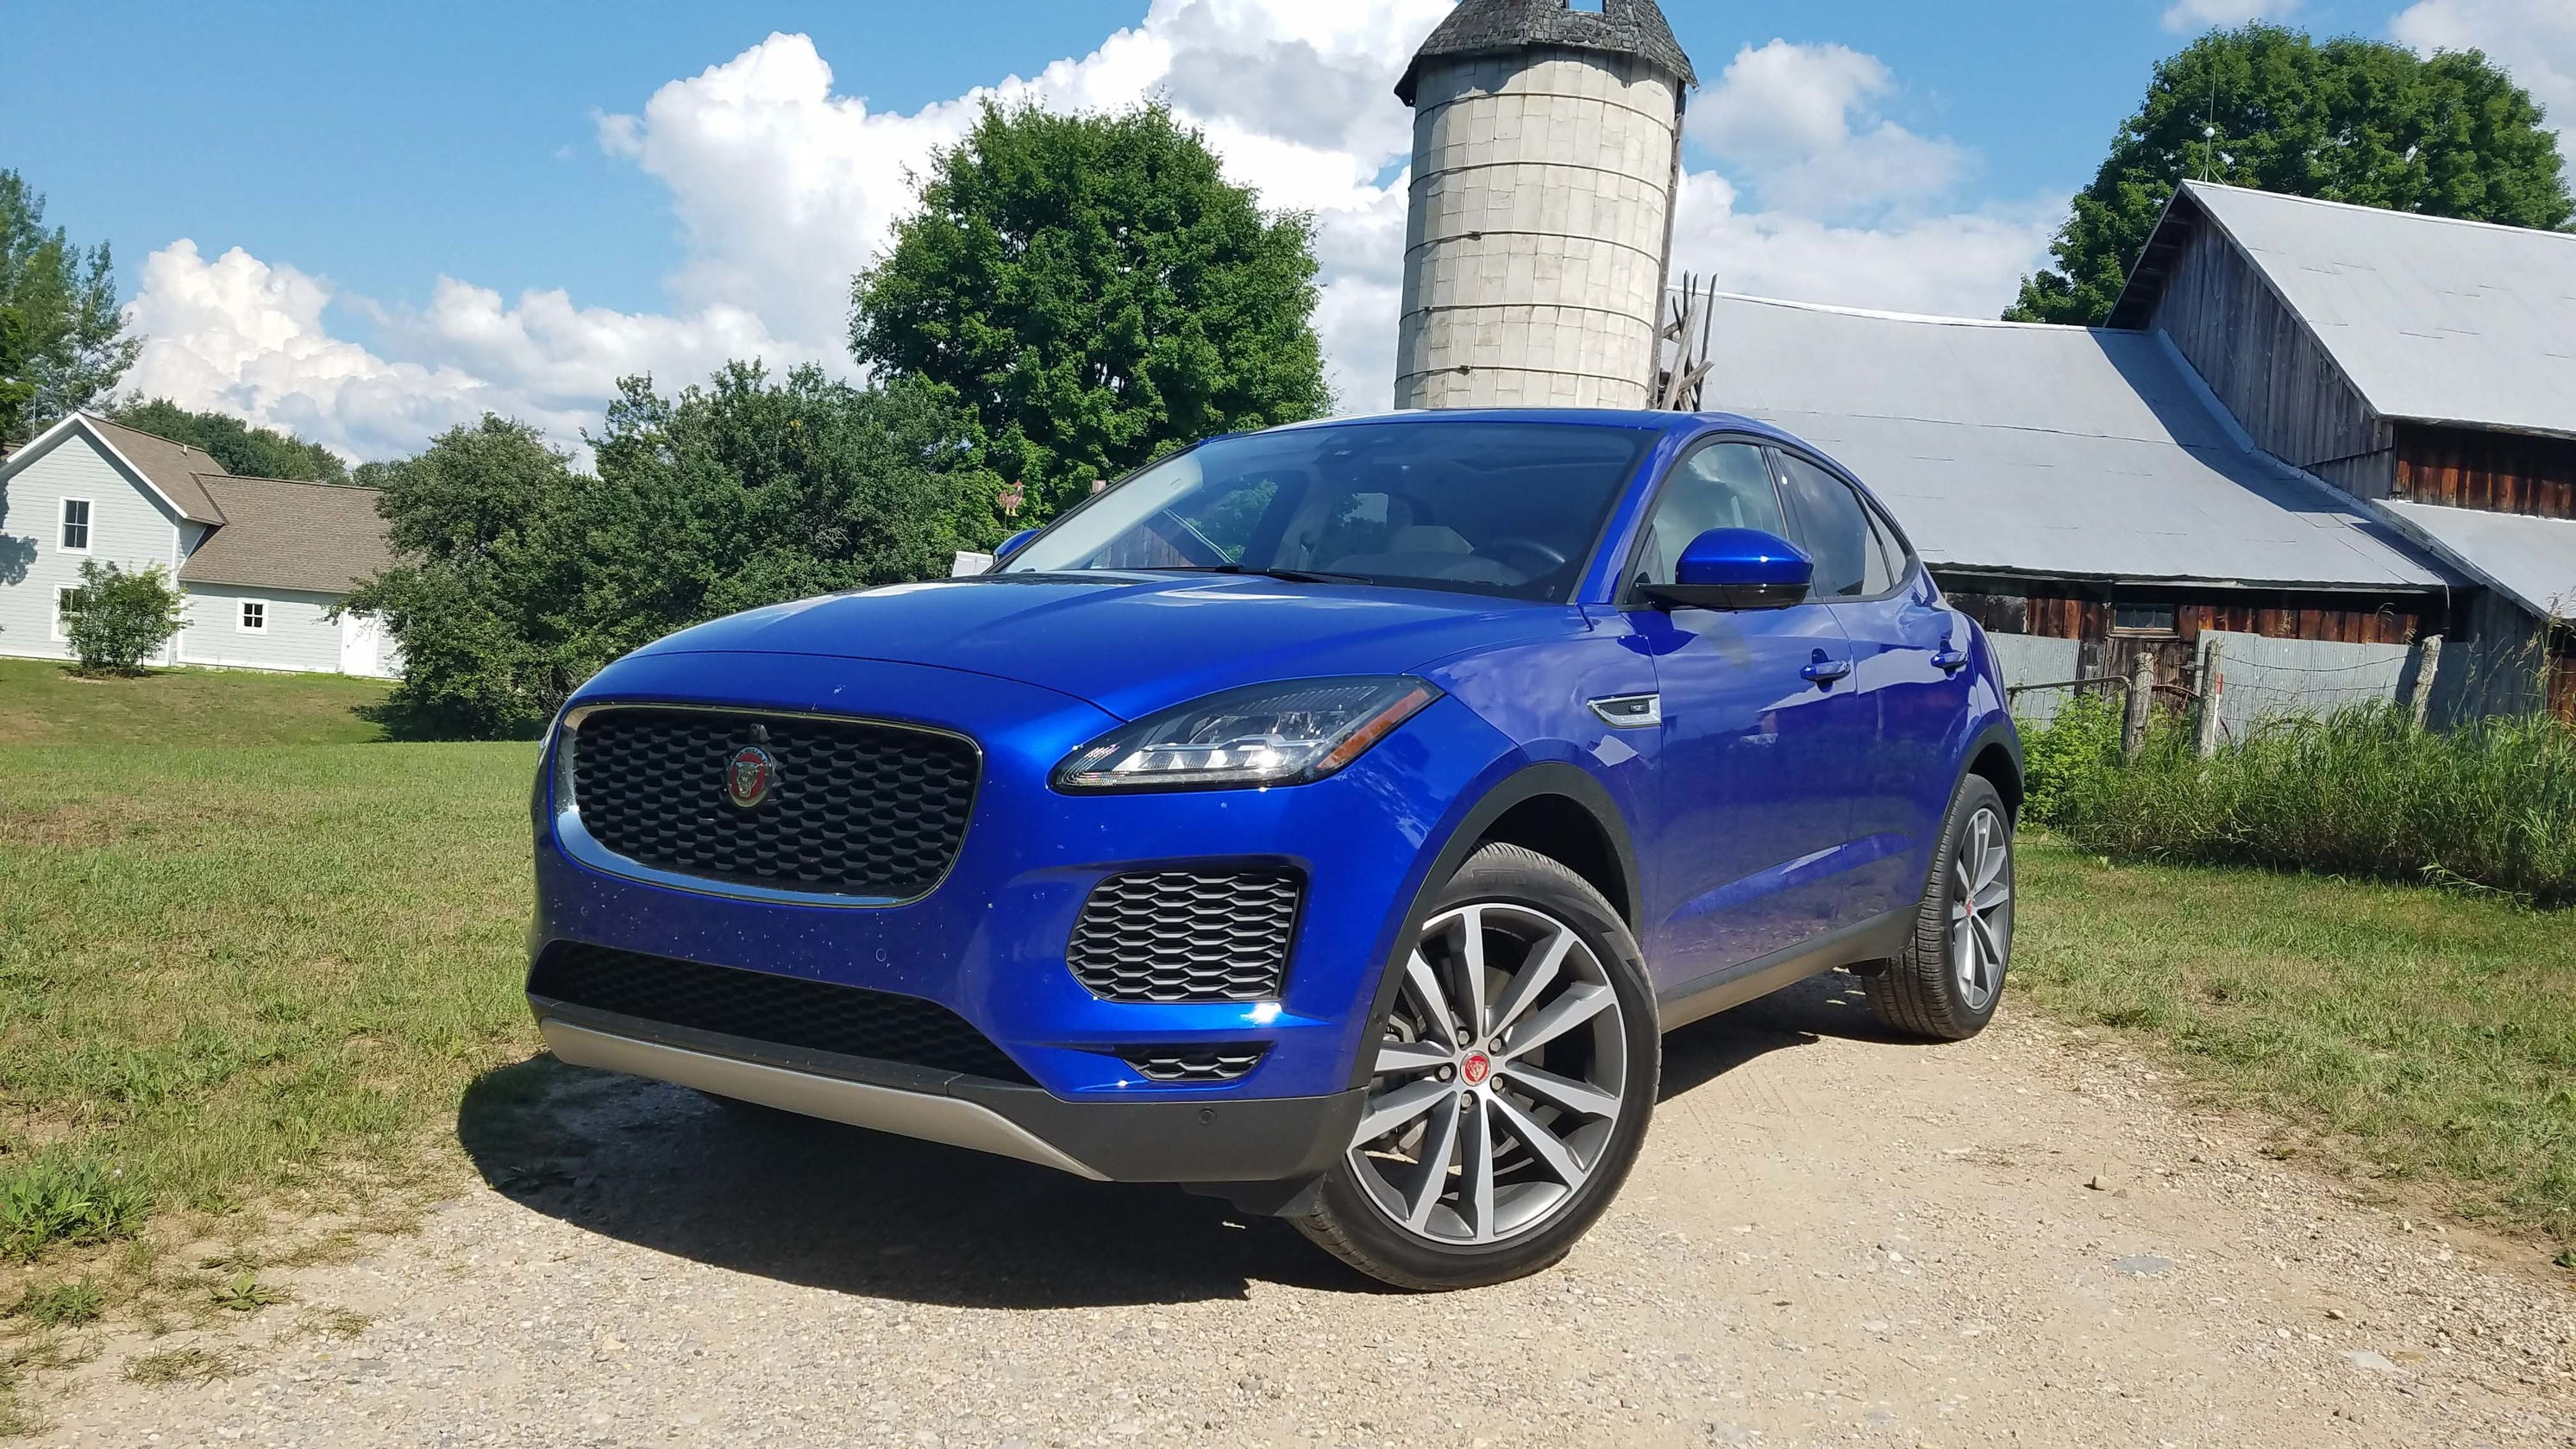 henry payne reviews the jaguar e pace. Black Bedroom Furniture Sets. Home Design Ideas